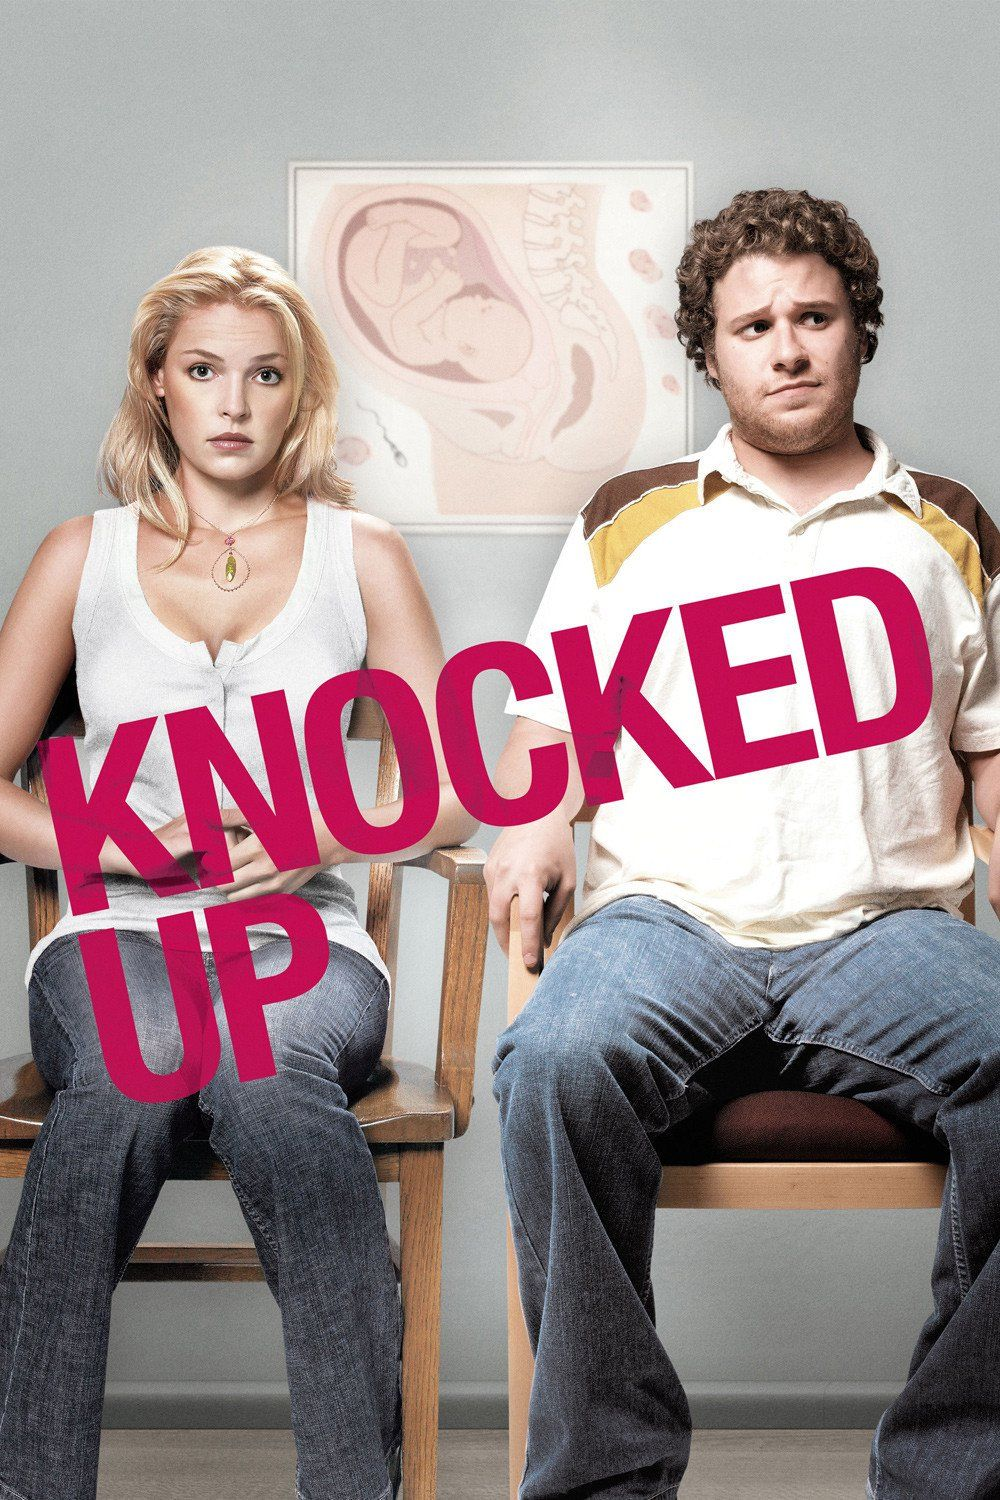 Watch movie online knocked up free download full hd quality movies